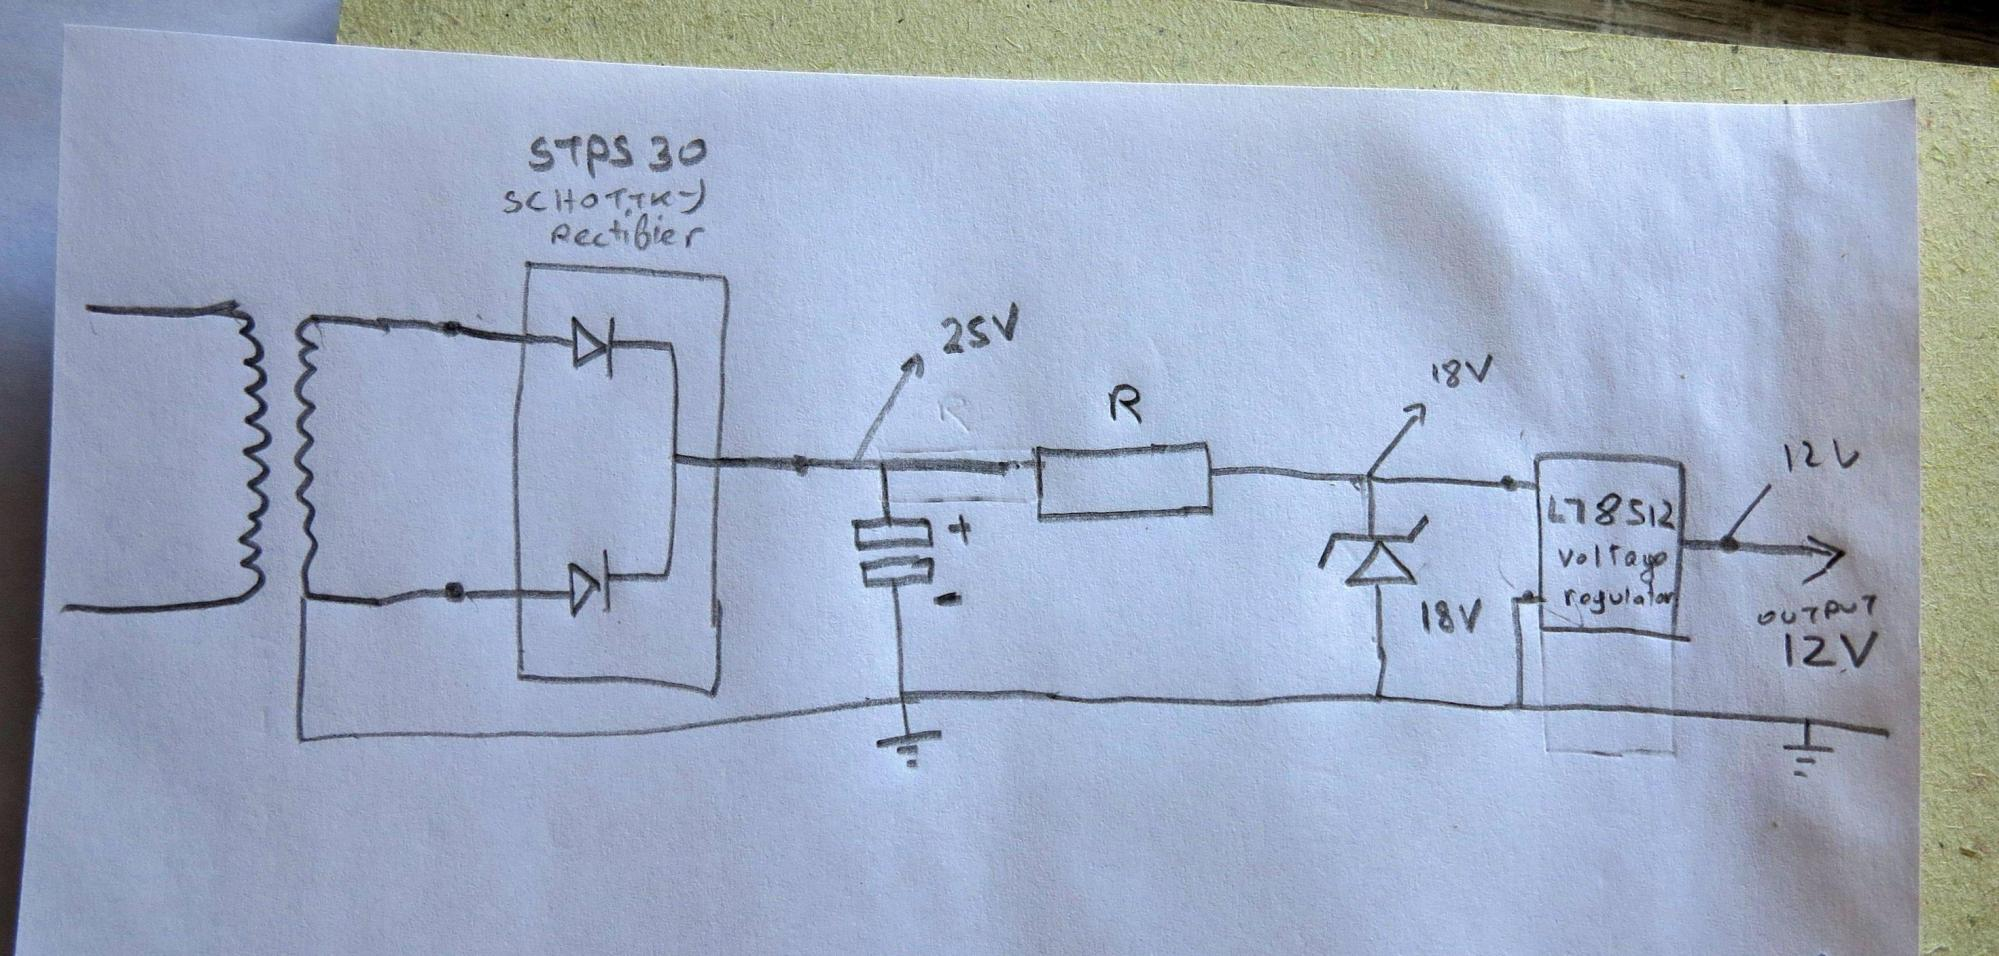 hight resolution of simple rectified voltage regulator not giving enough power